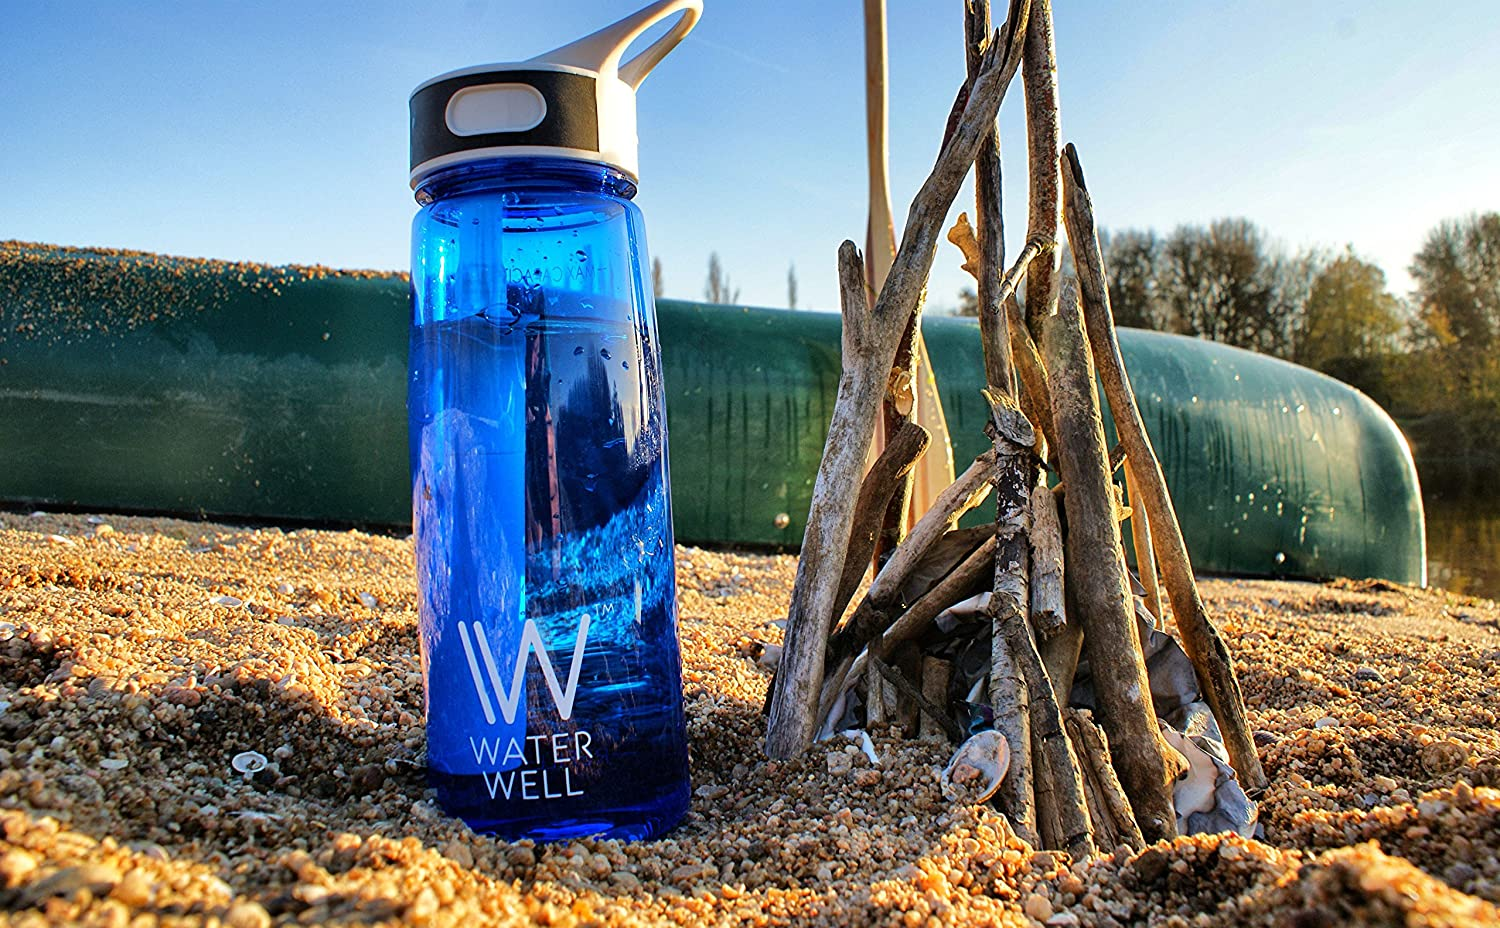 WaterWell Travel Ultra Filtering Water Bottle Purify to Eliminate 99.9/% of Waterborne Pathogens 1000 Litre Lifespan //// 700ml Capacity //// Multiple Stage Filtration //// Leak-Proof Design //// Fast Flow